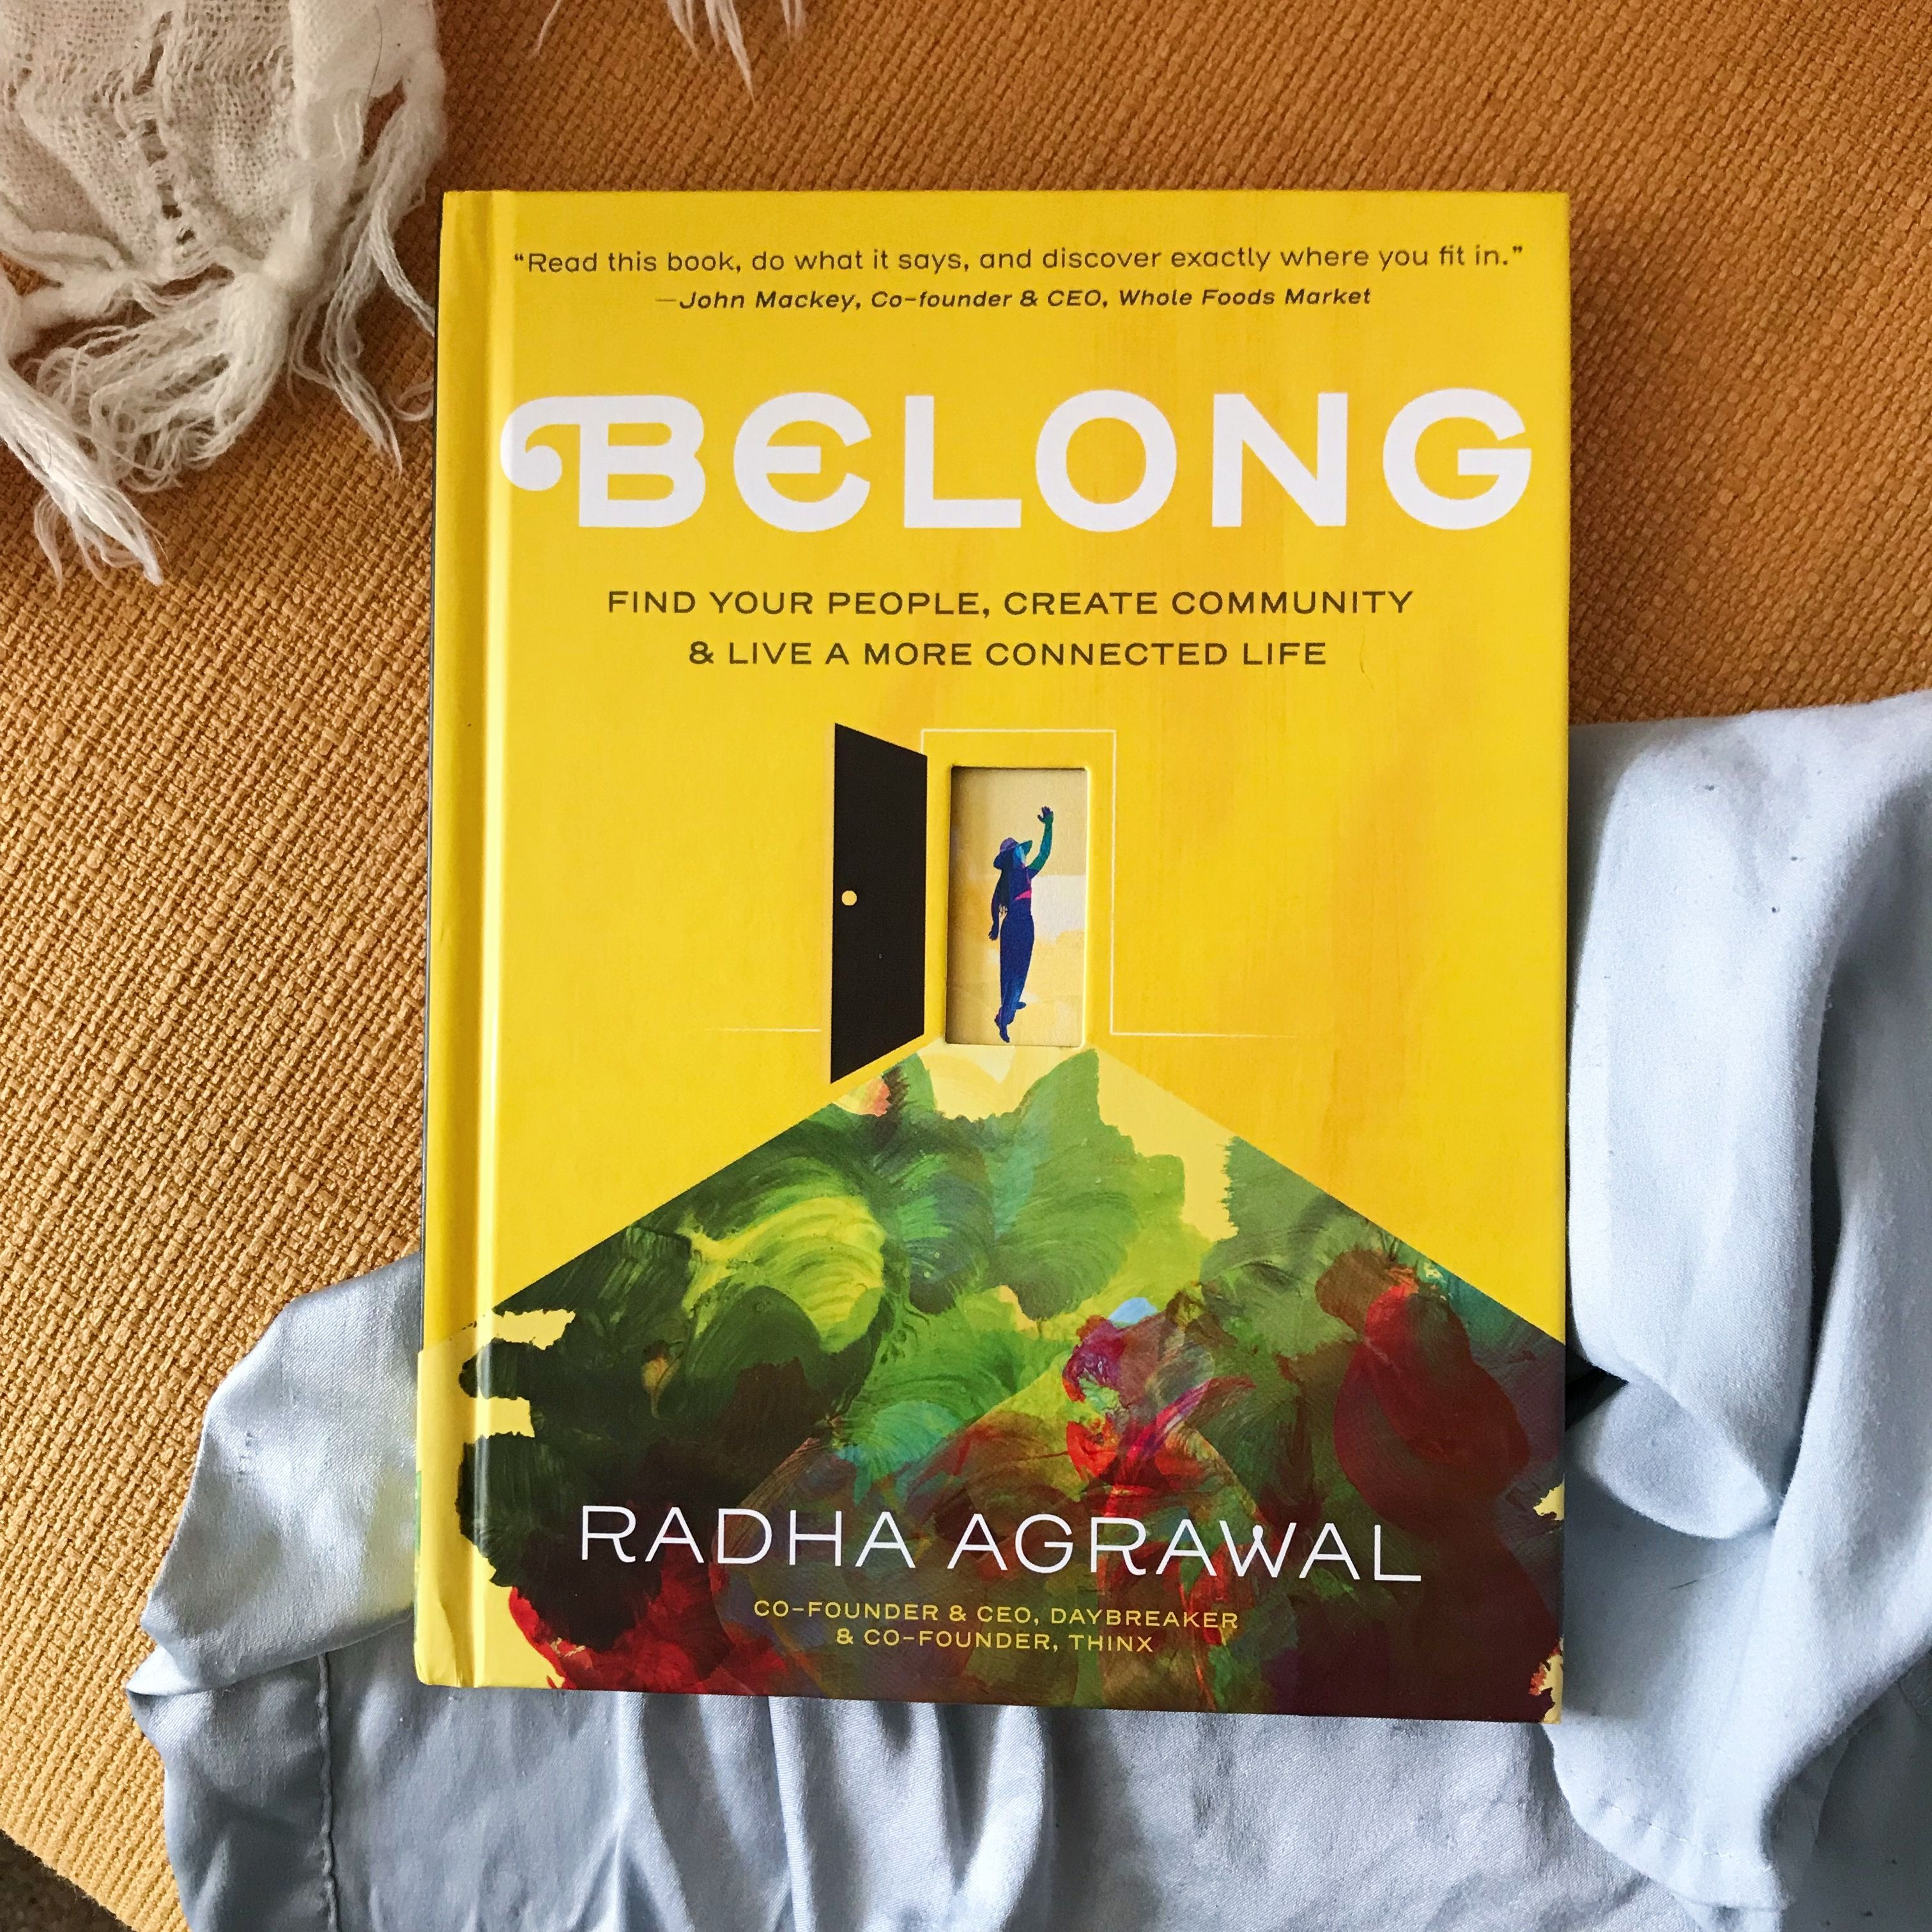 We're spending the week with our book date, BELONG by